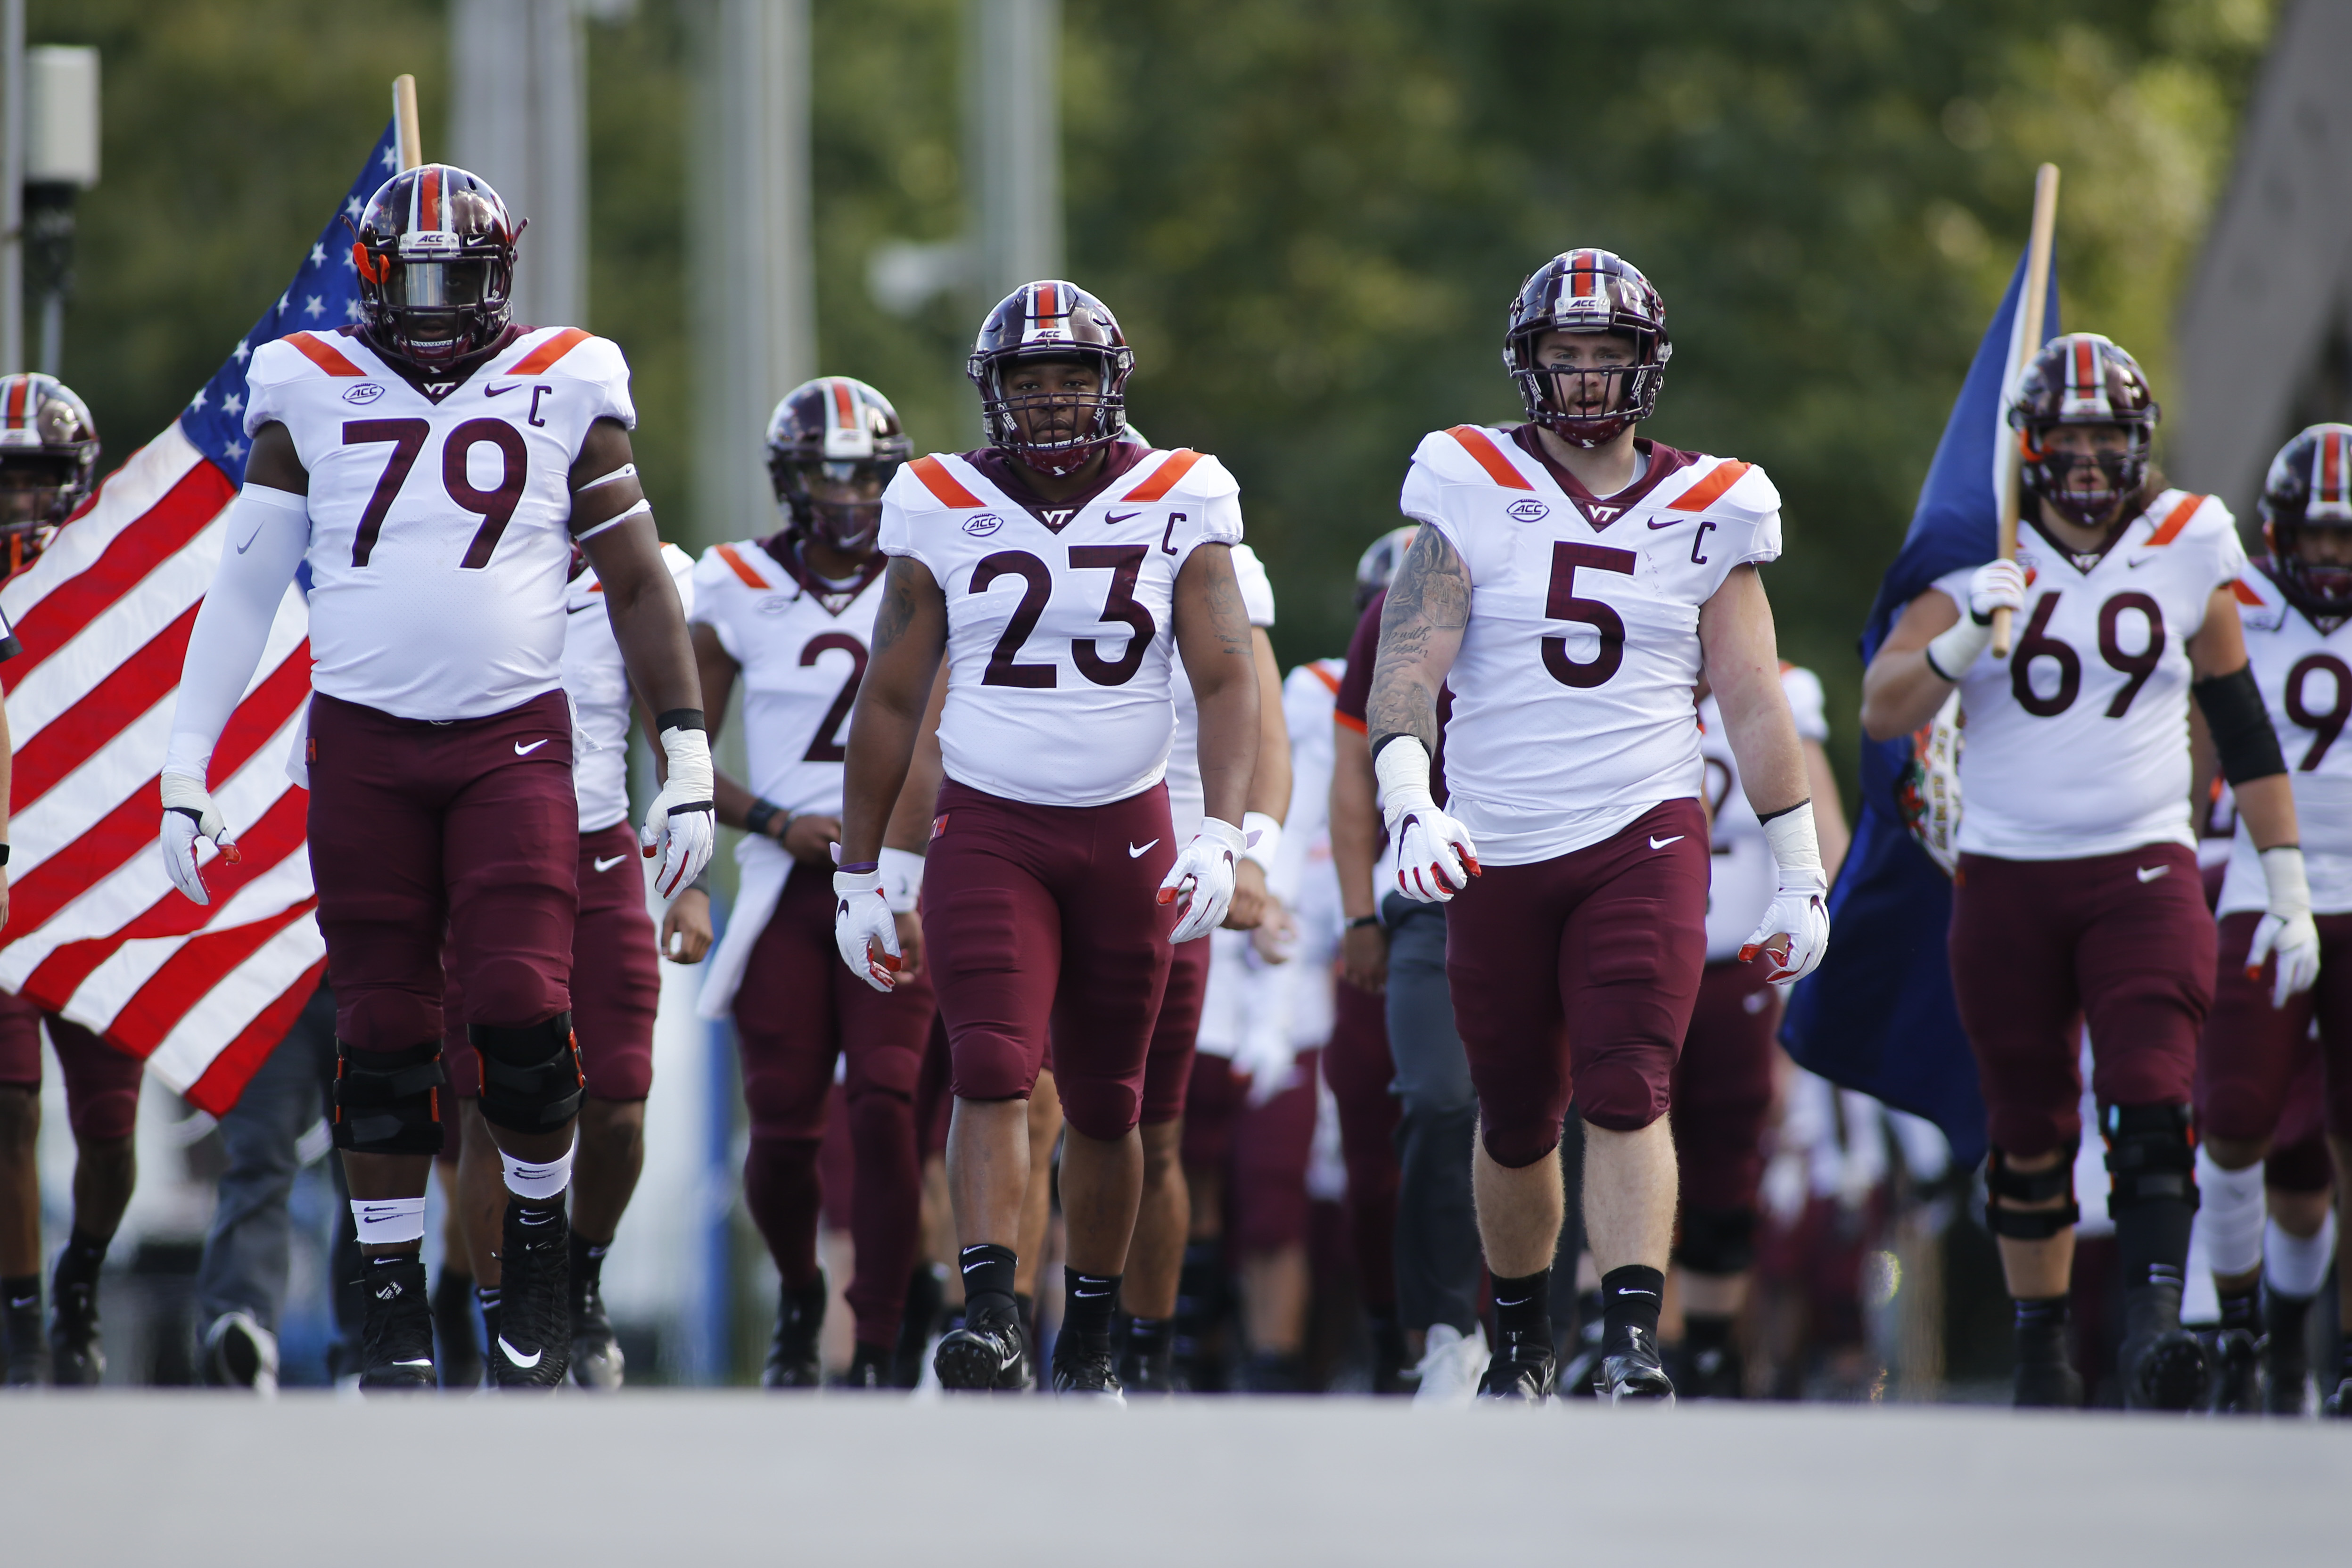 Virginia Tech Reveals Uniforms for Game at Pittsburgh